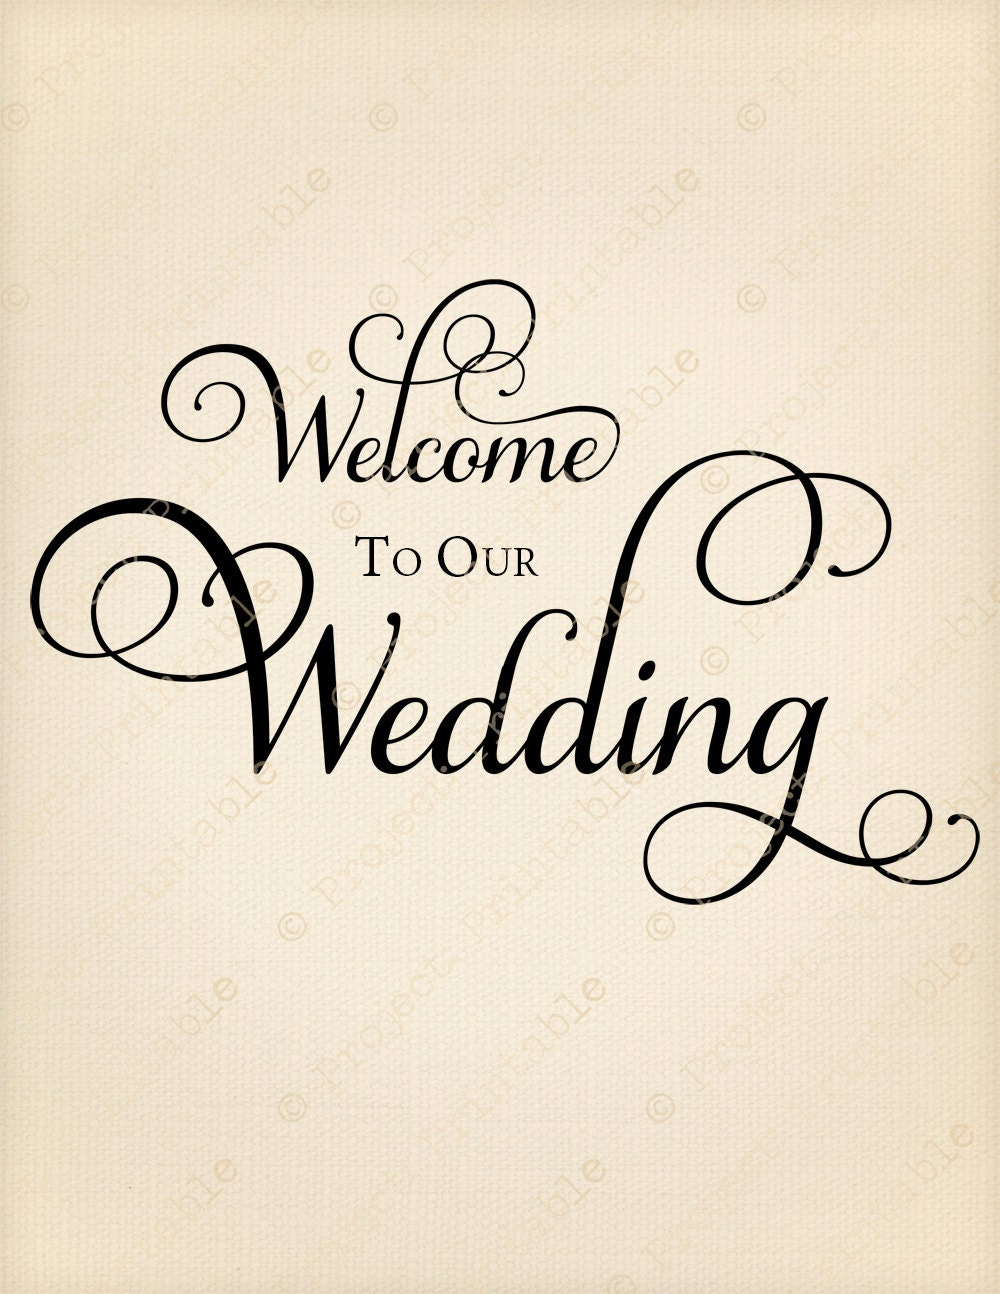 Our Wedding Gallery Wedding Dress Decoration And Refrence